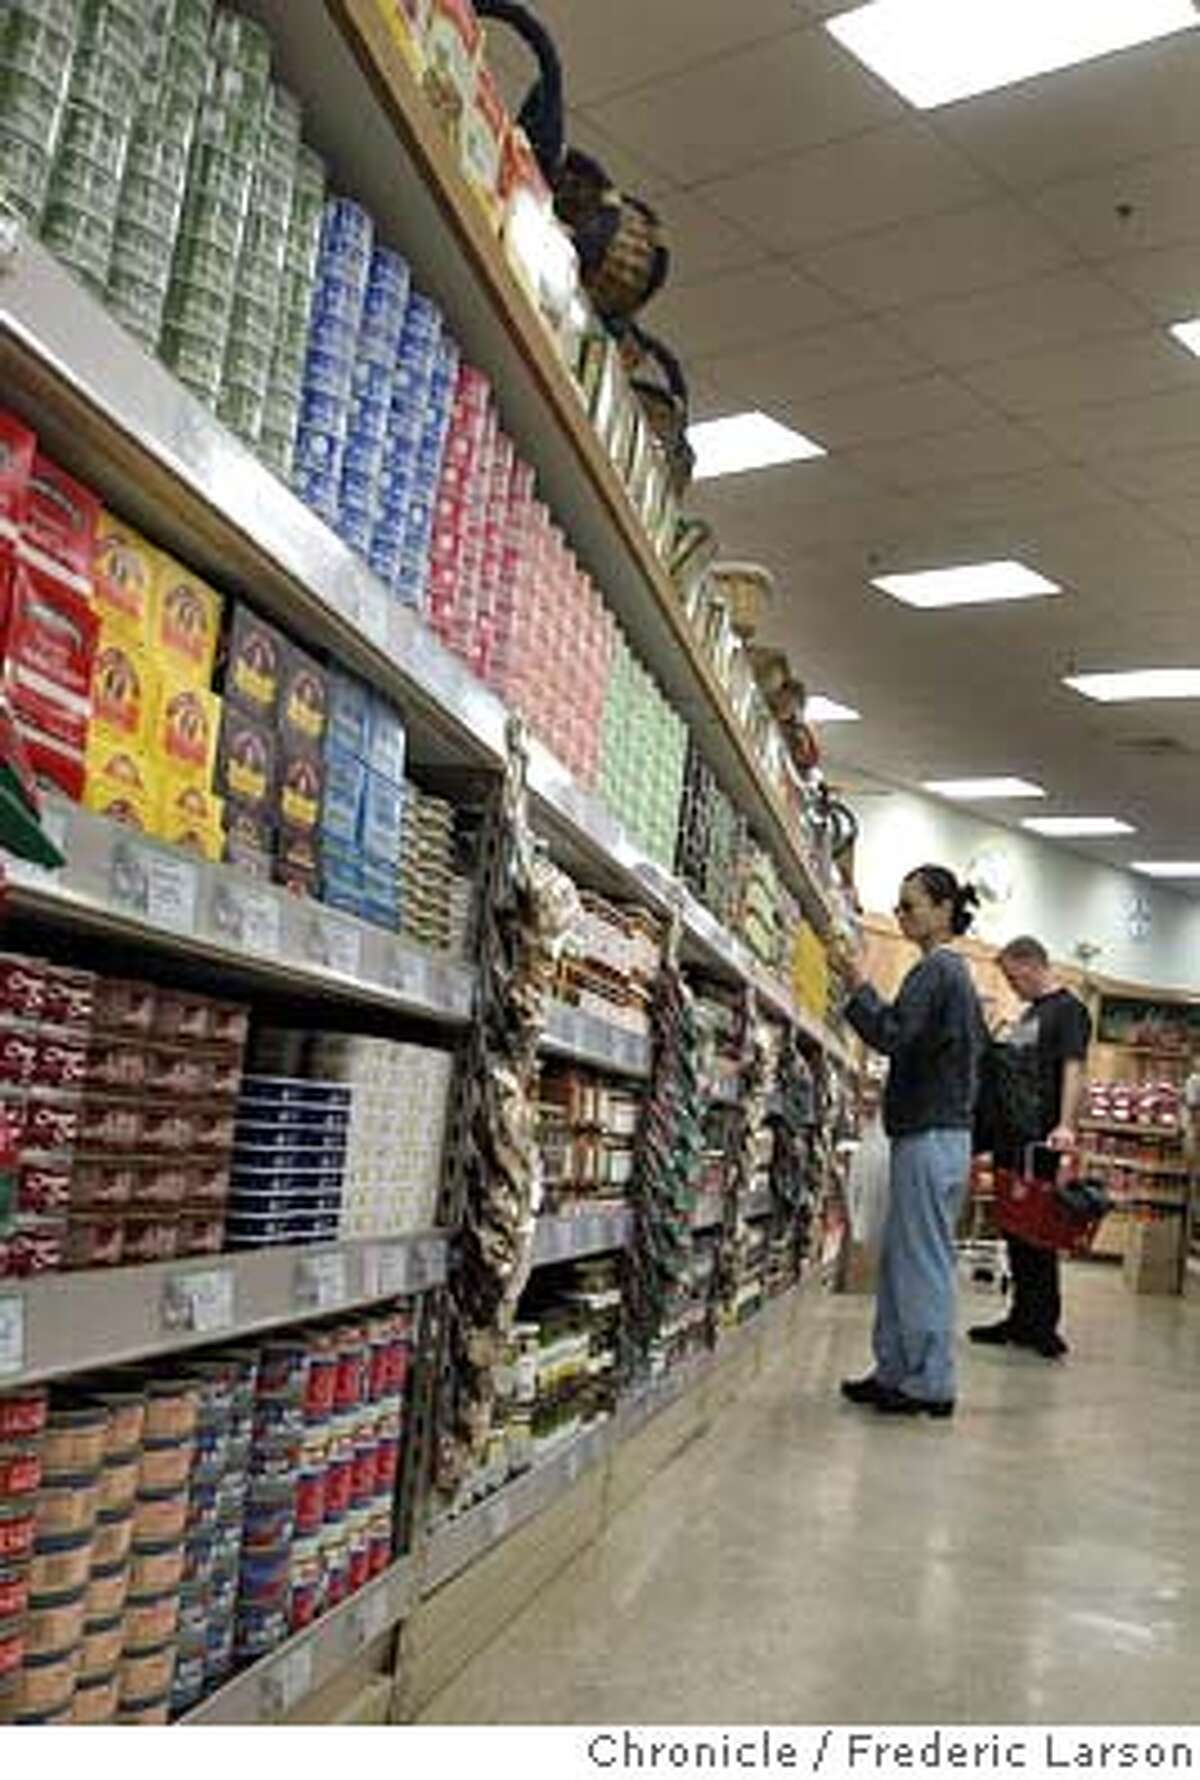 ; Trader Joe's is considering a new location in the Castro, on 15th Street and Market. The reaction so far is mixed. Some like the idea of an alternative to Safeway and Cala, while others worry about traffic back-ups similar to the Trader Joe's on Masonic and Geary. 6/11/04 San Francisco Chronicle Frederic Larson